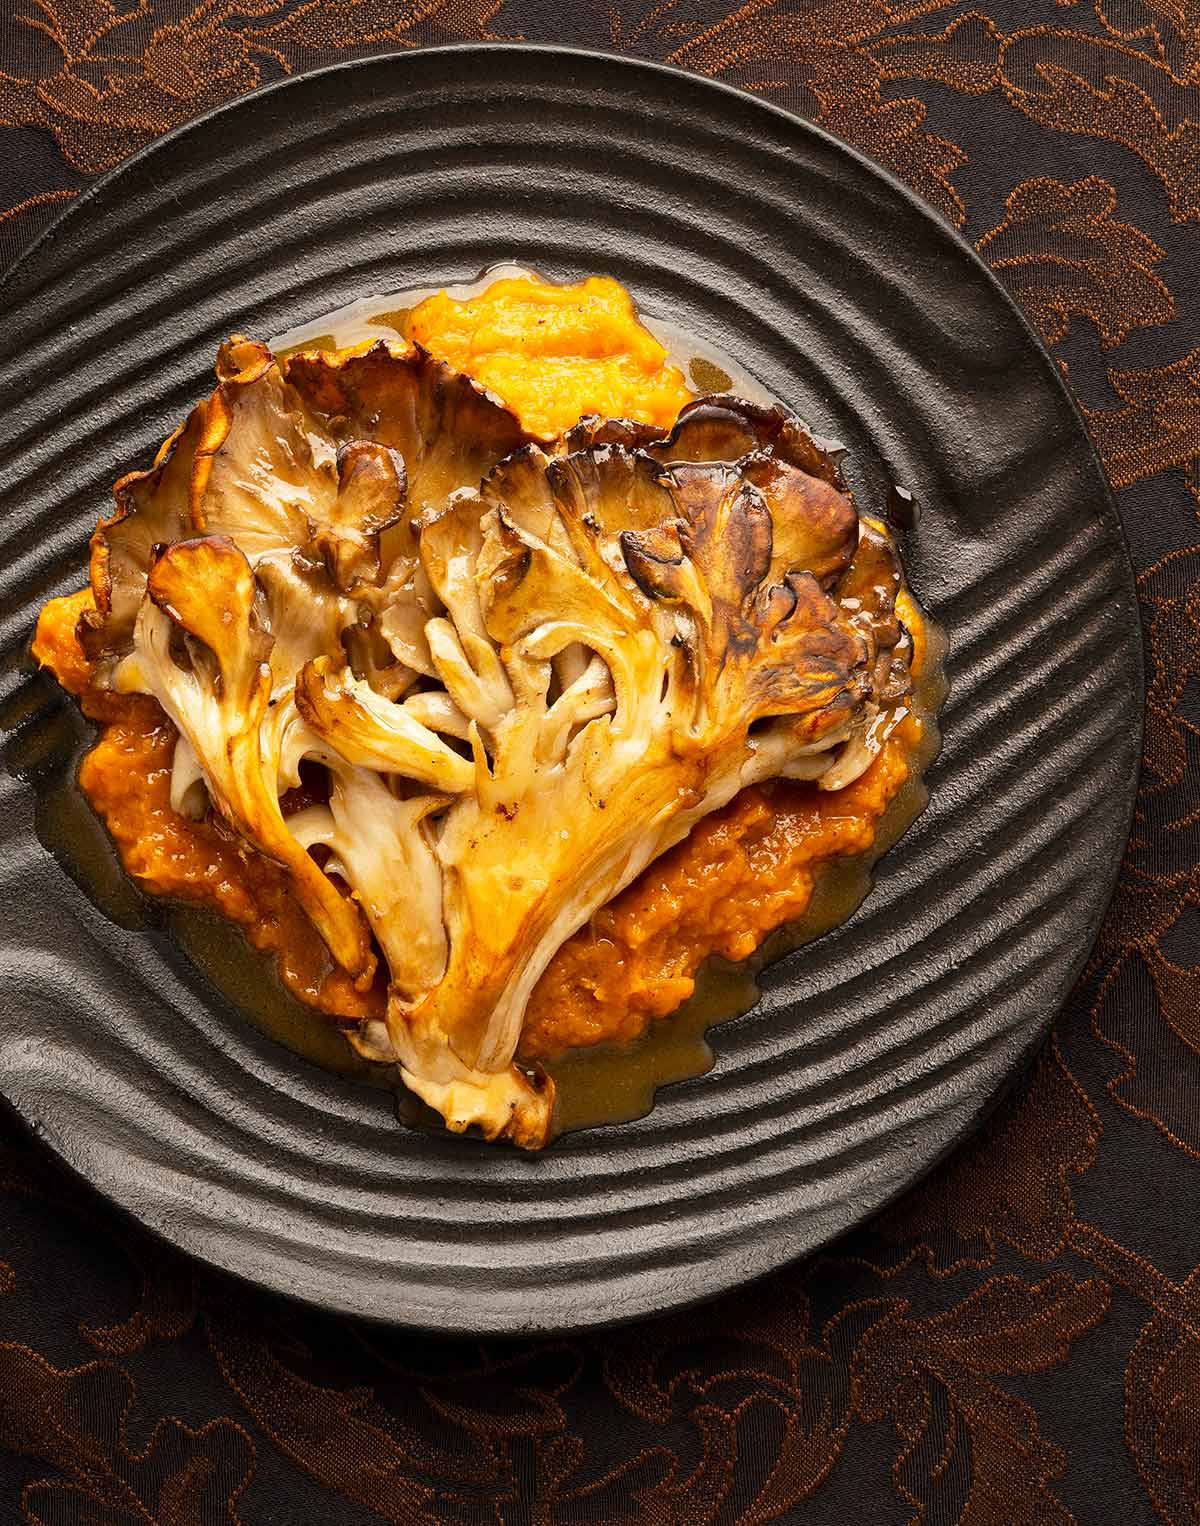 Hen of the woods recipe on a plate